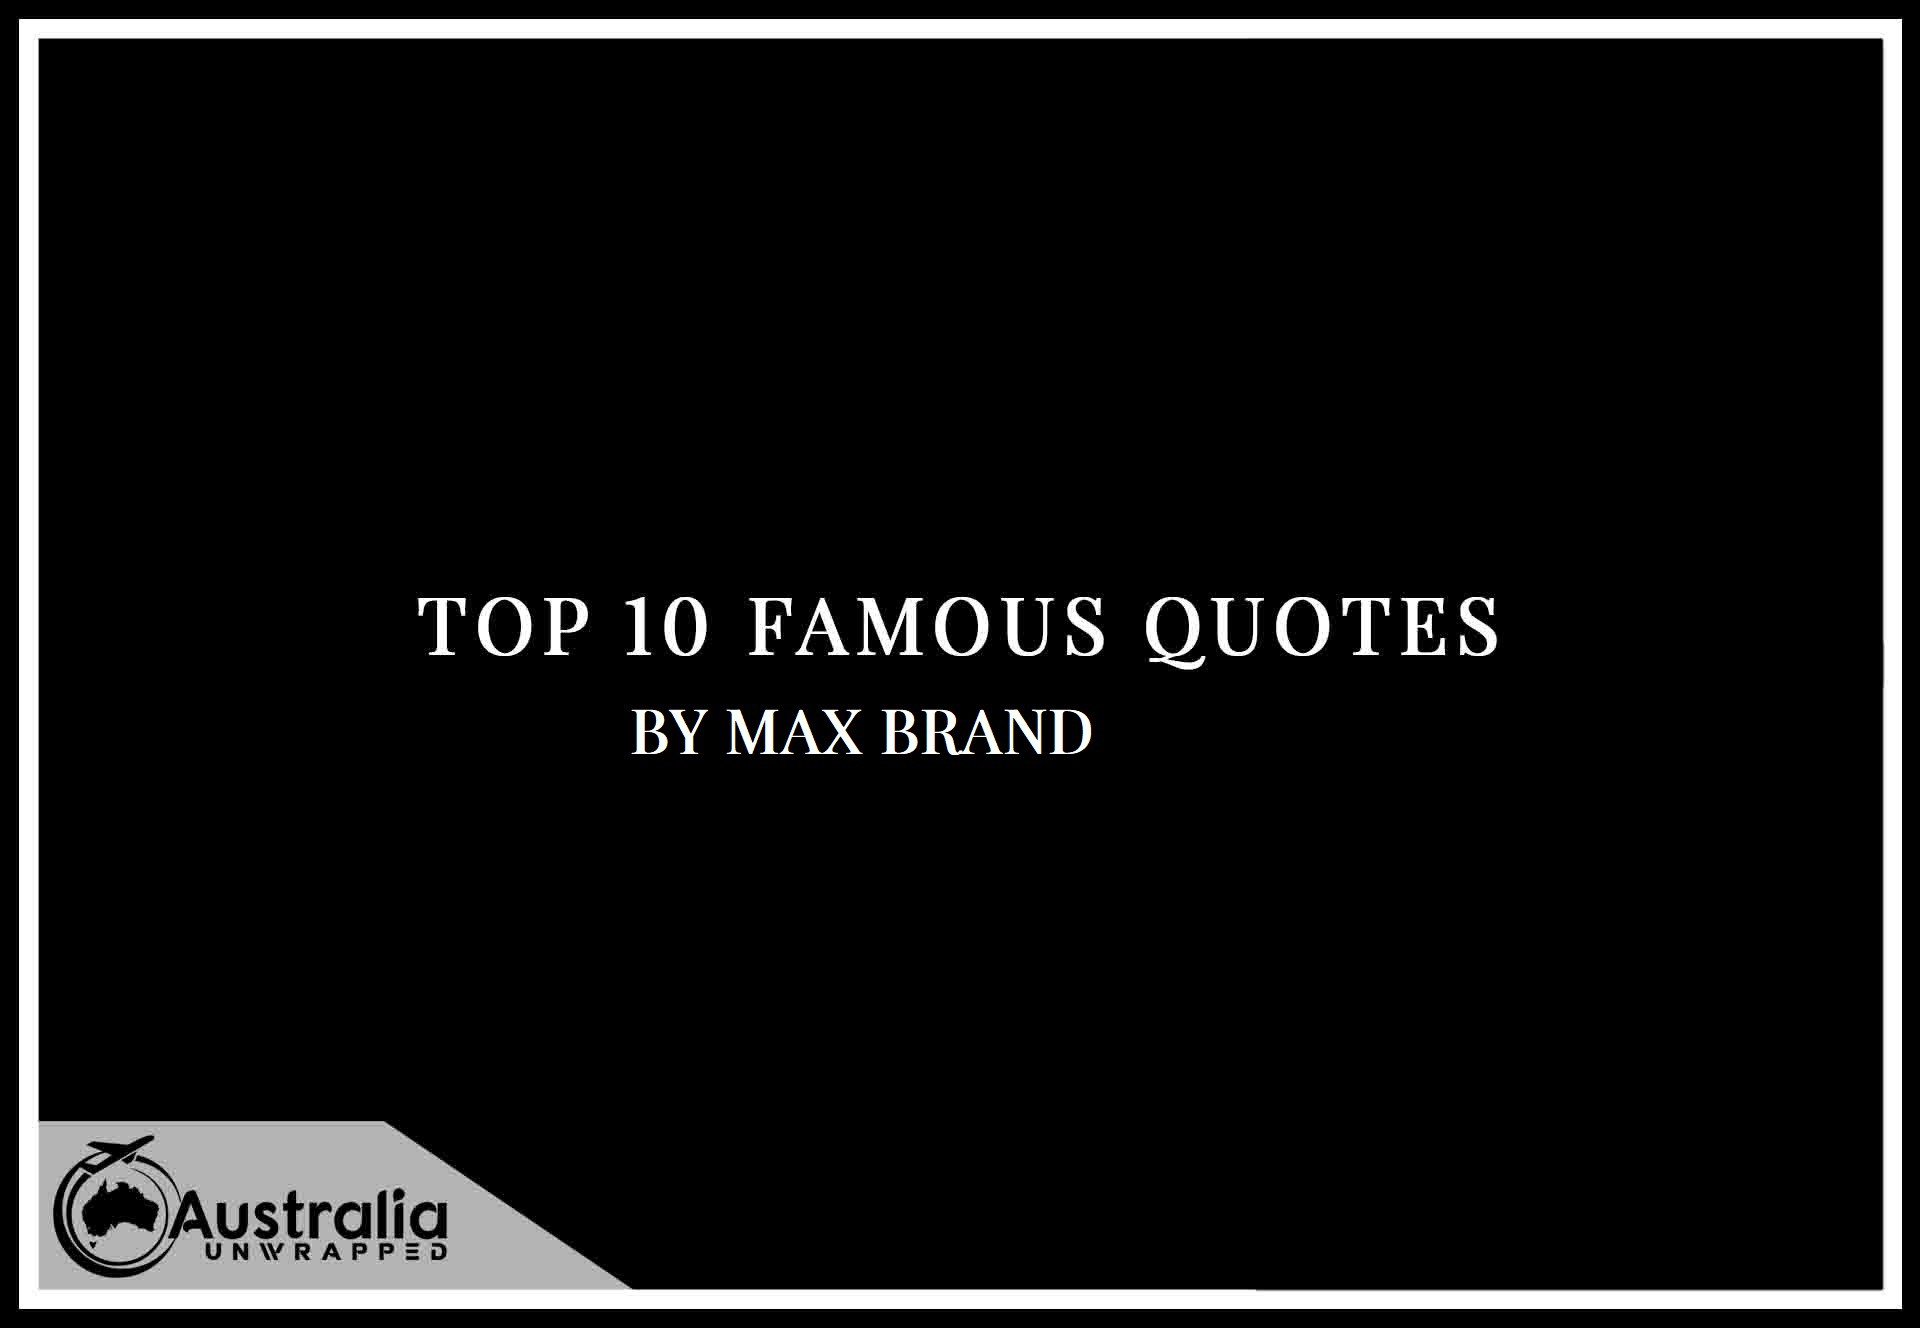 Top 10 Famous Quotes by Author Max Brand